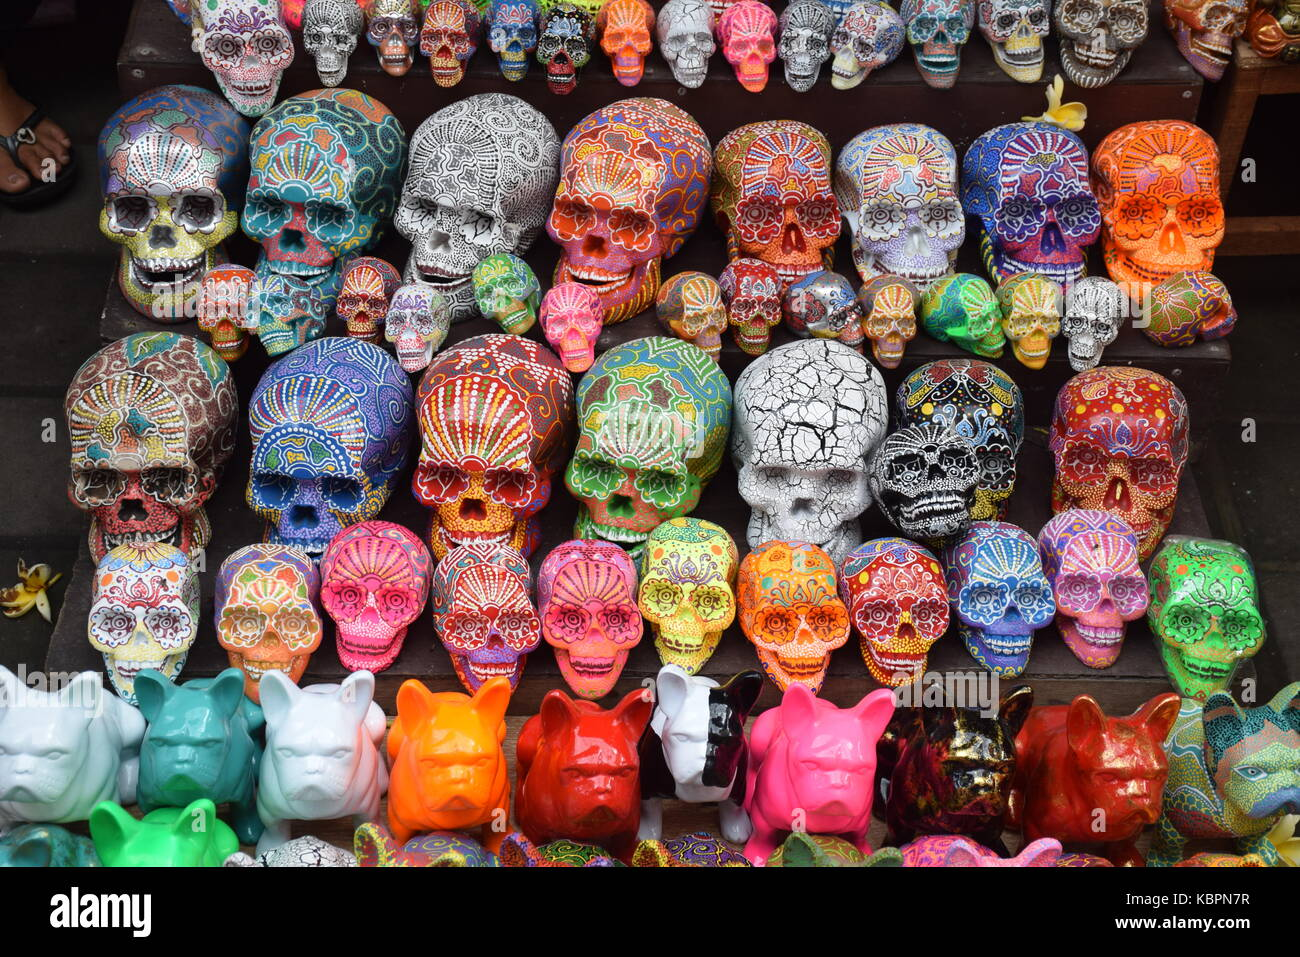 Colorful skulls sold in a shop in Ubud market in Bali, Indonesia - Stock Image